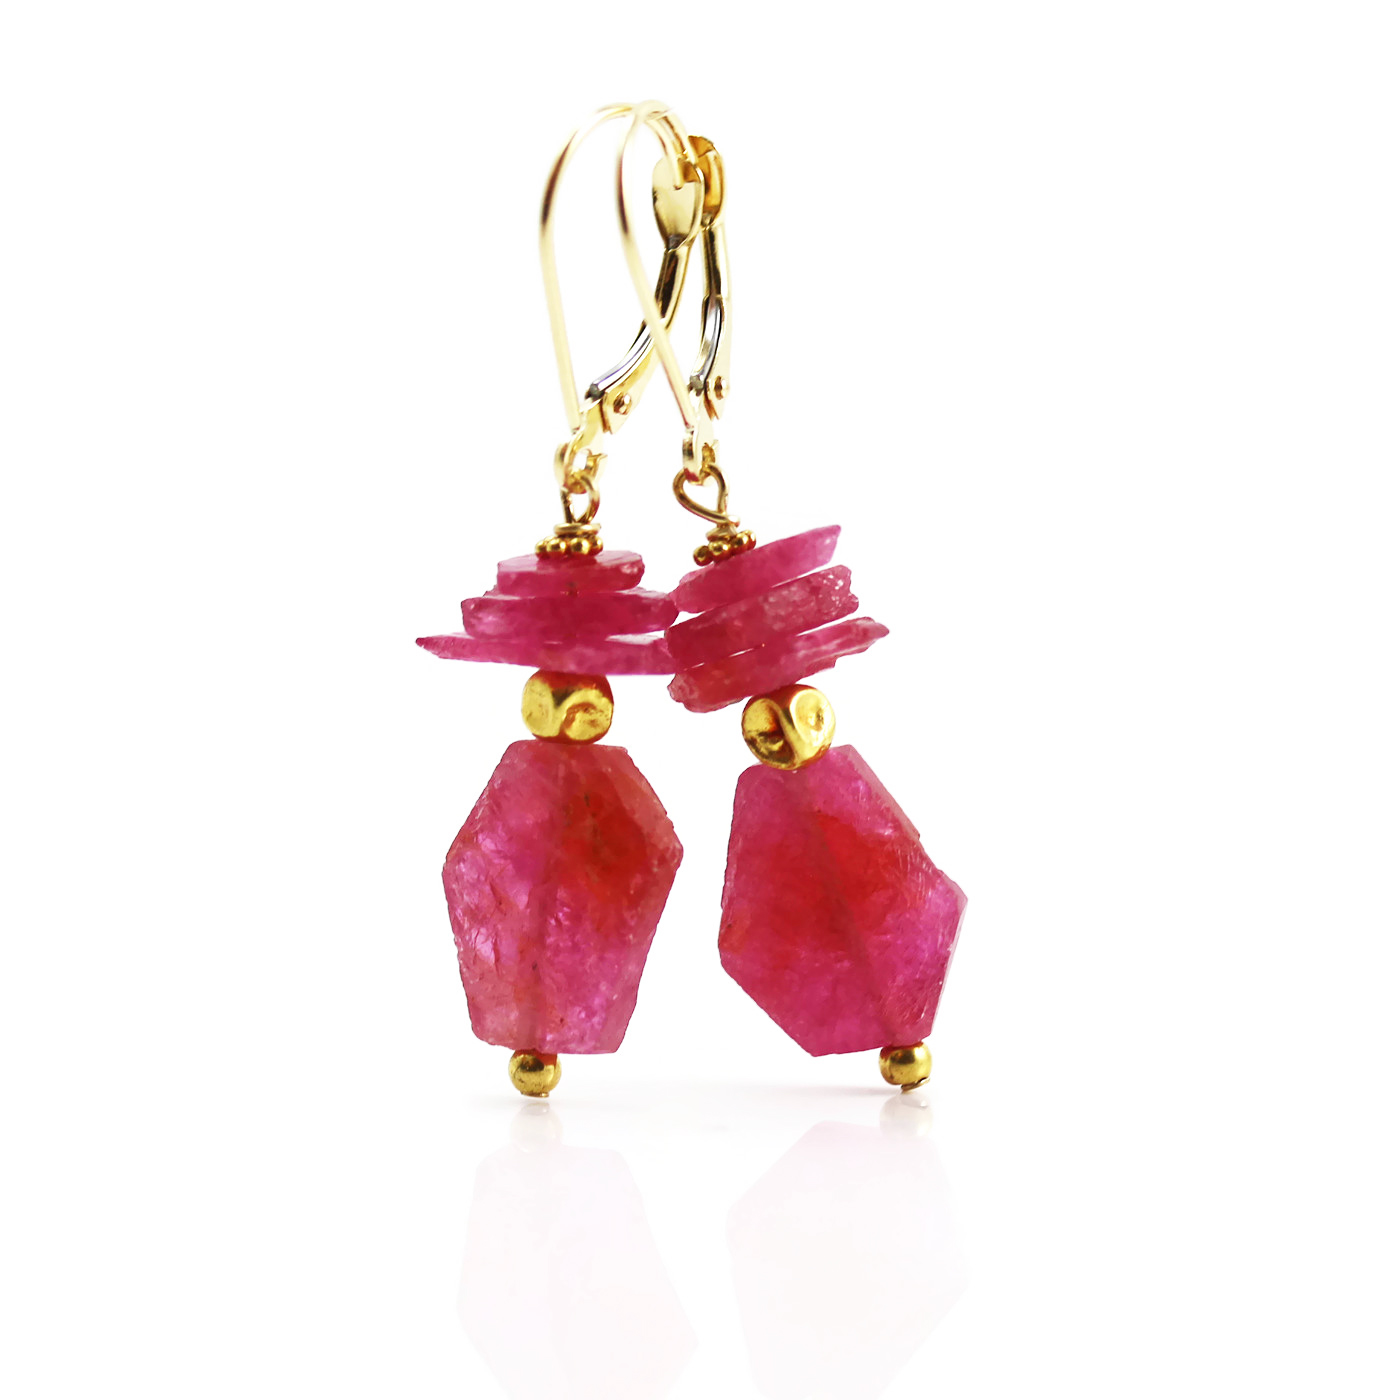 products ruby quarter y vohk jewellery r earrings three atelier valani